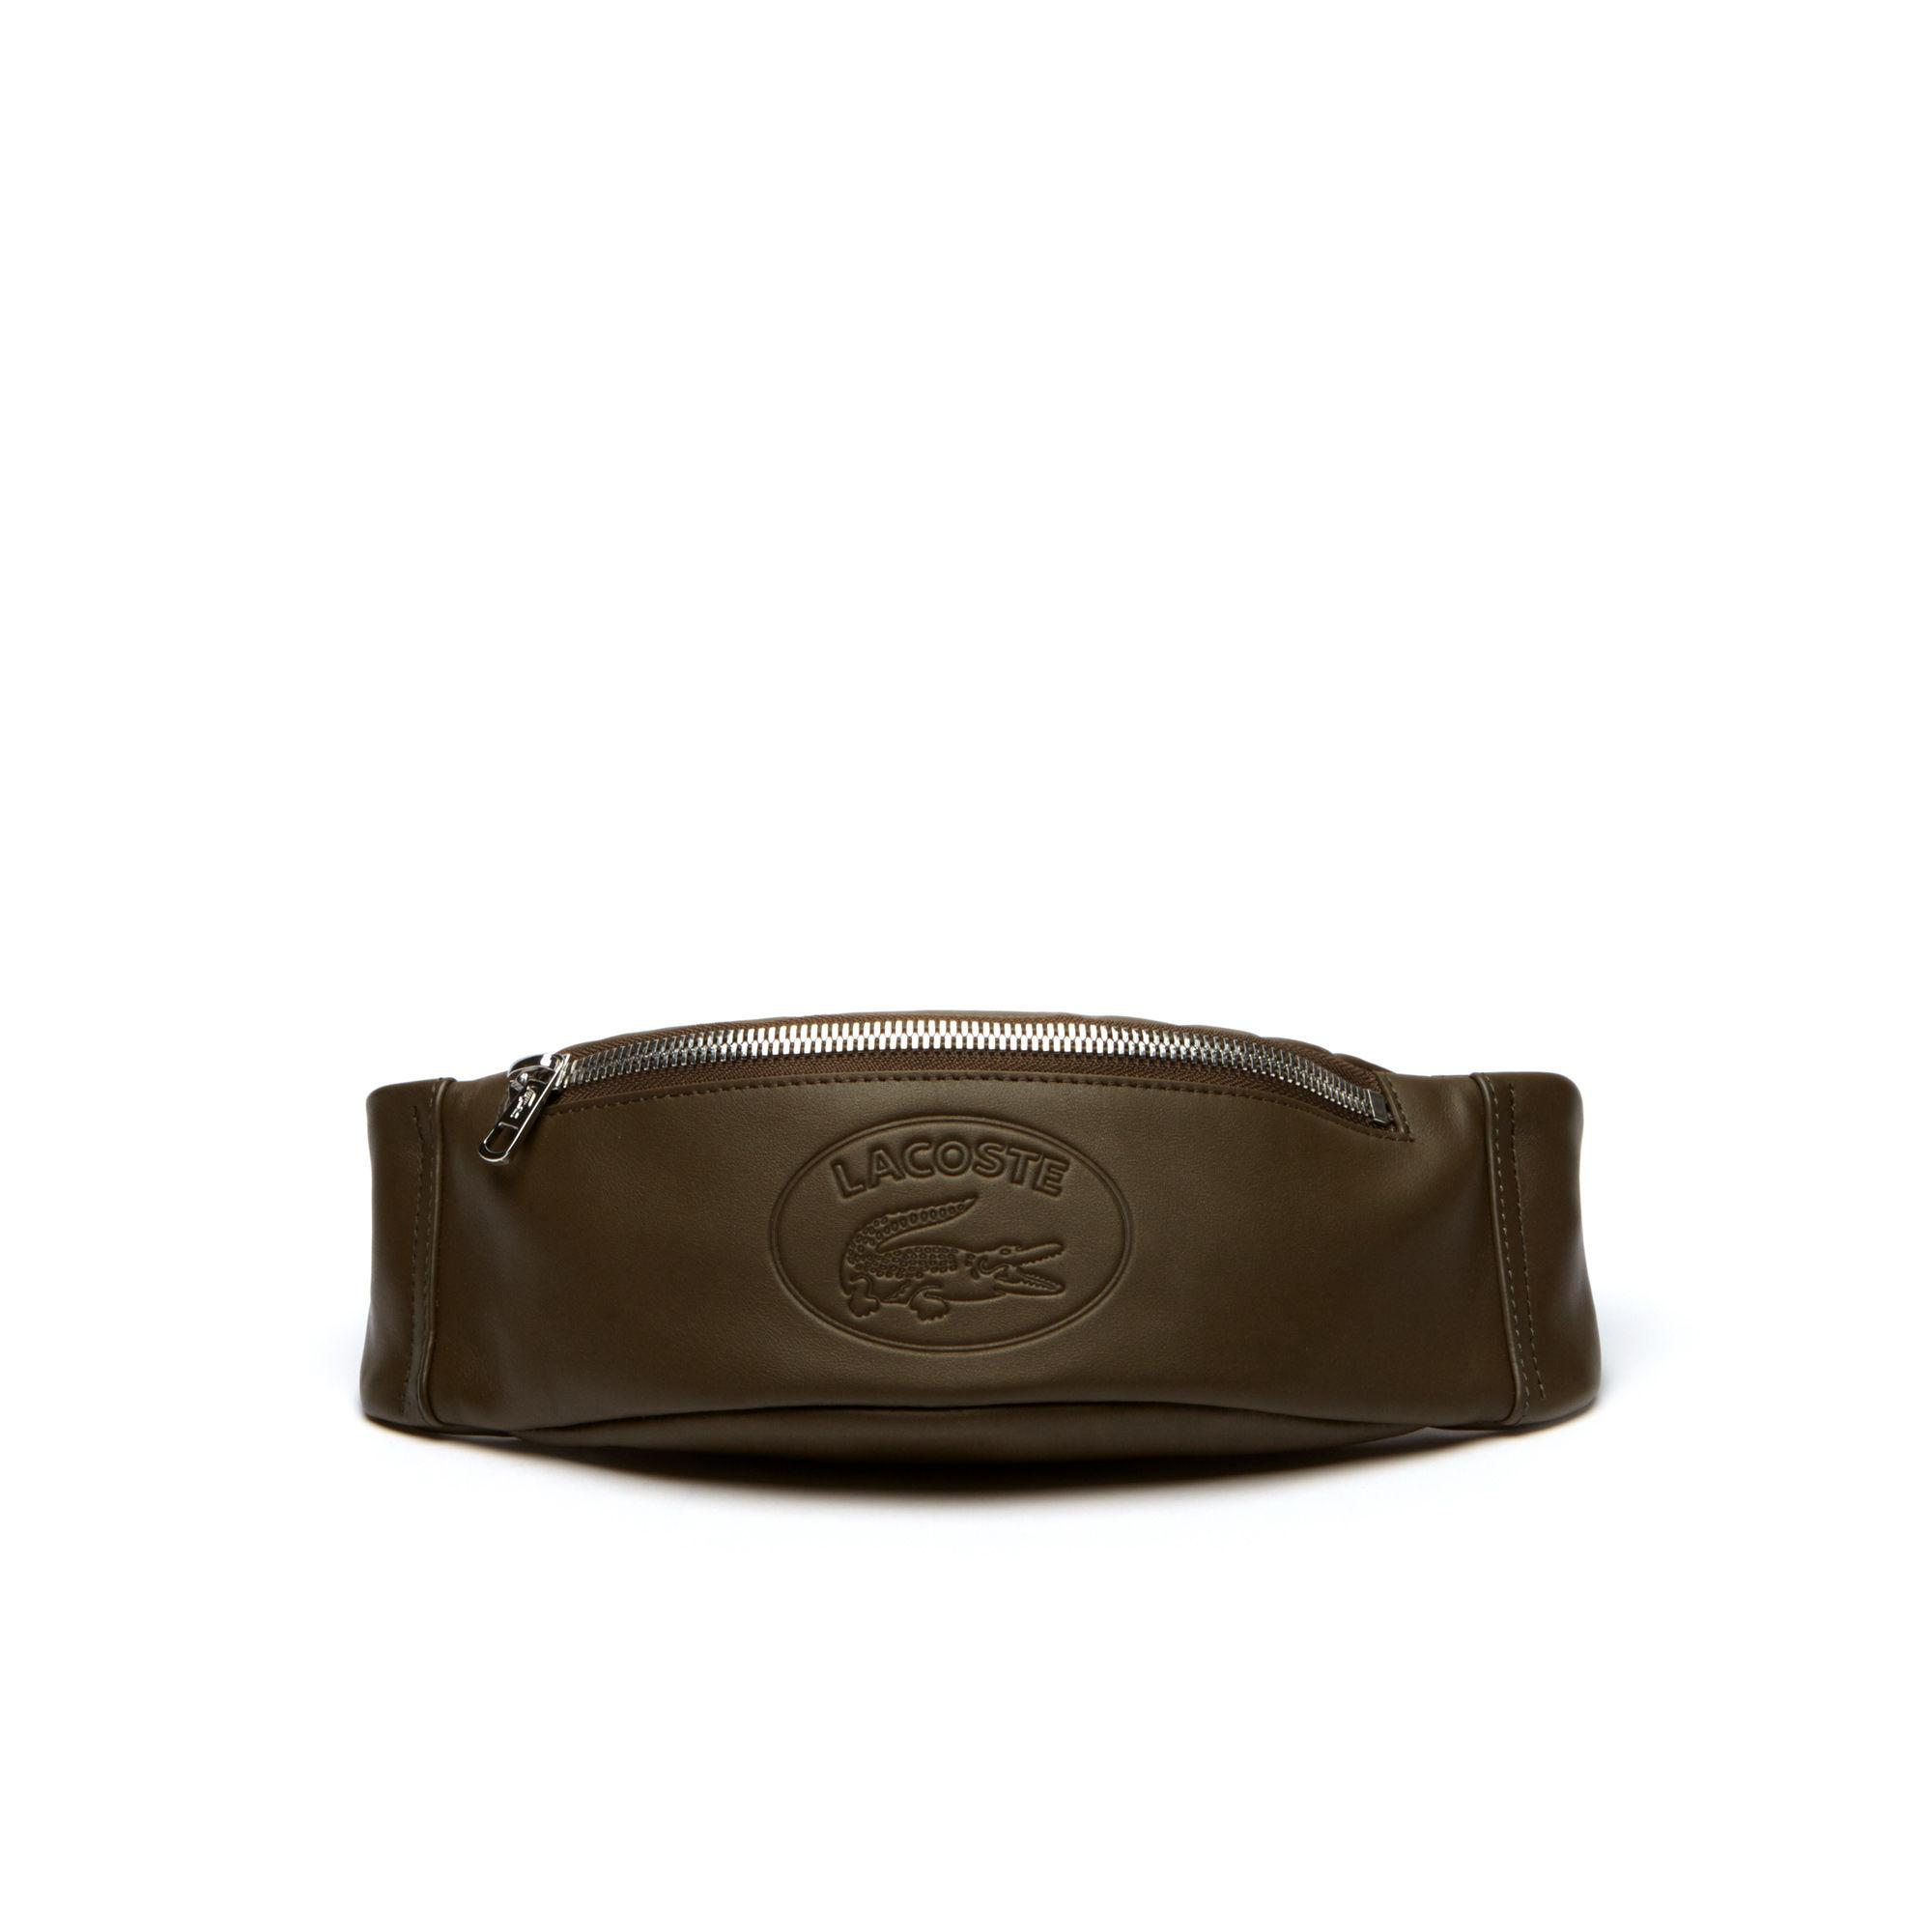 d2ef8559fb Lacoste L.12.12 Casual Embossed Lettering Leather Zip Fanny Pack for ...